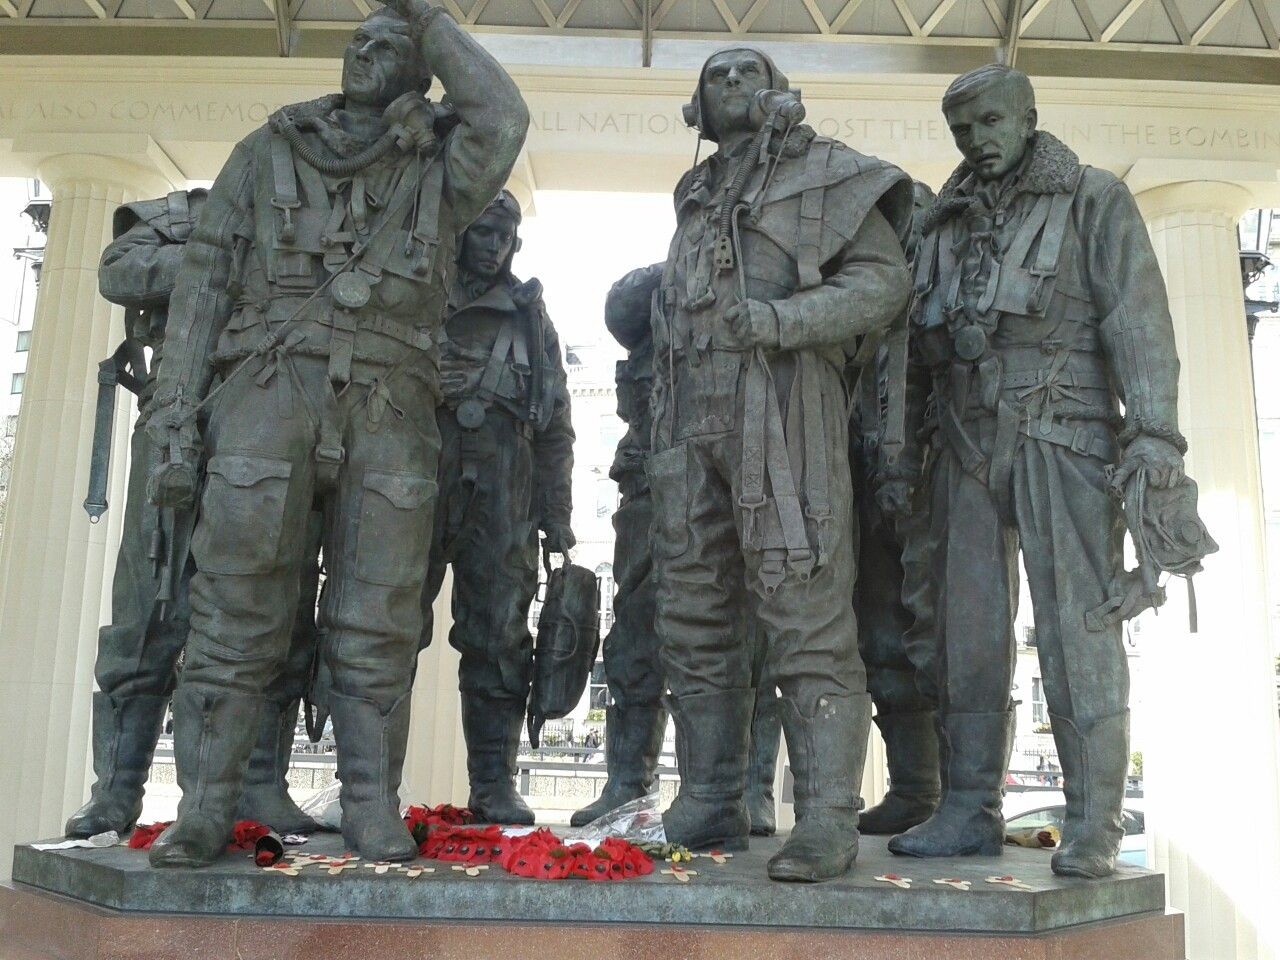 Bomber command memorial London.